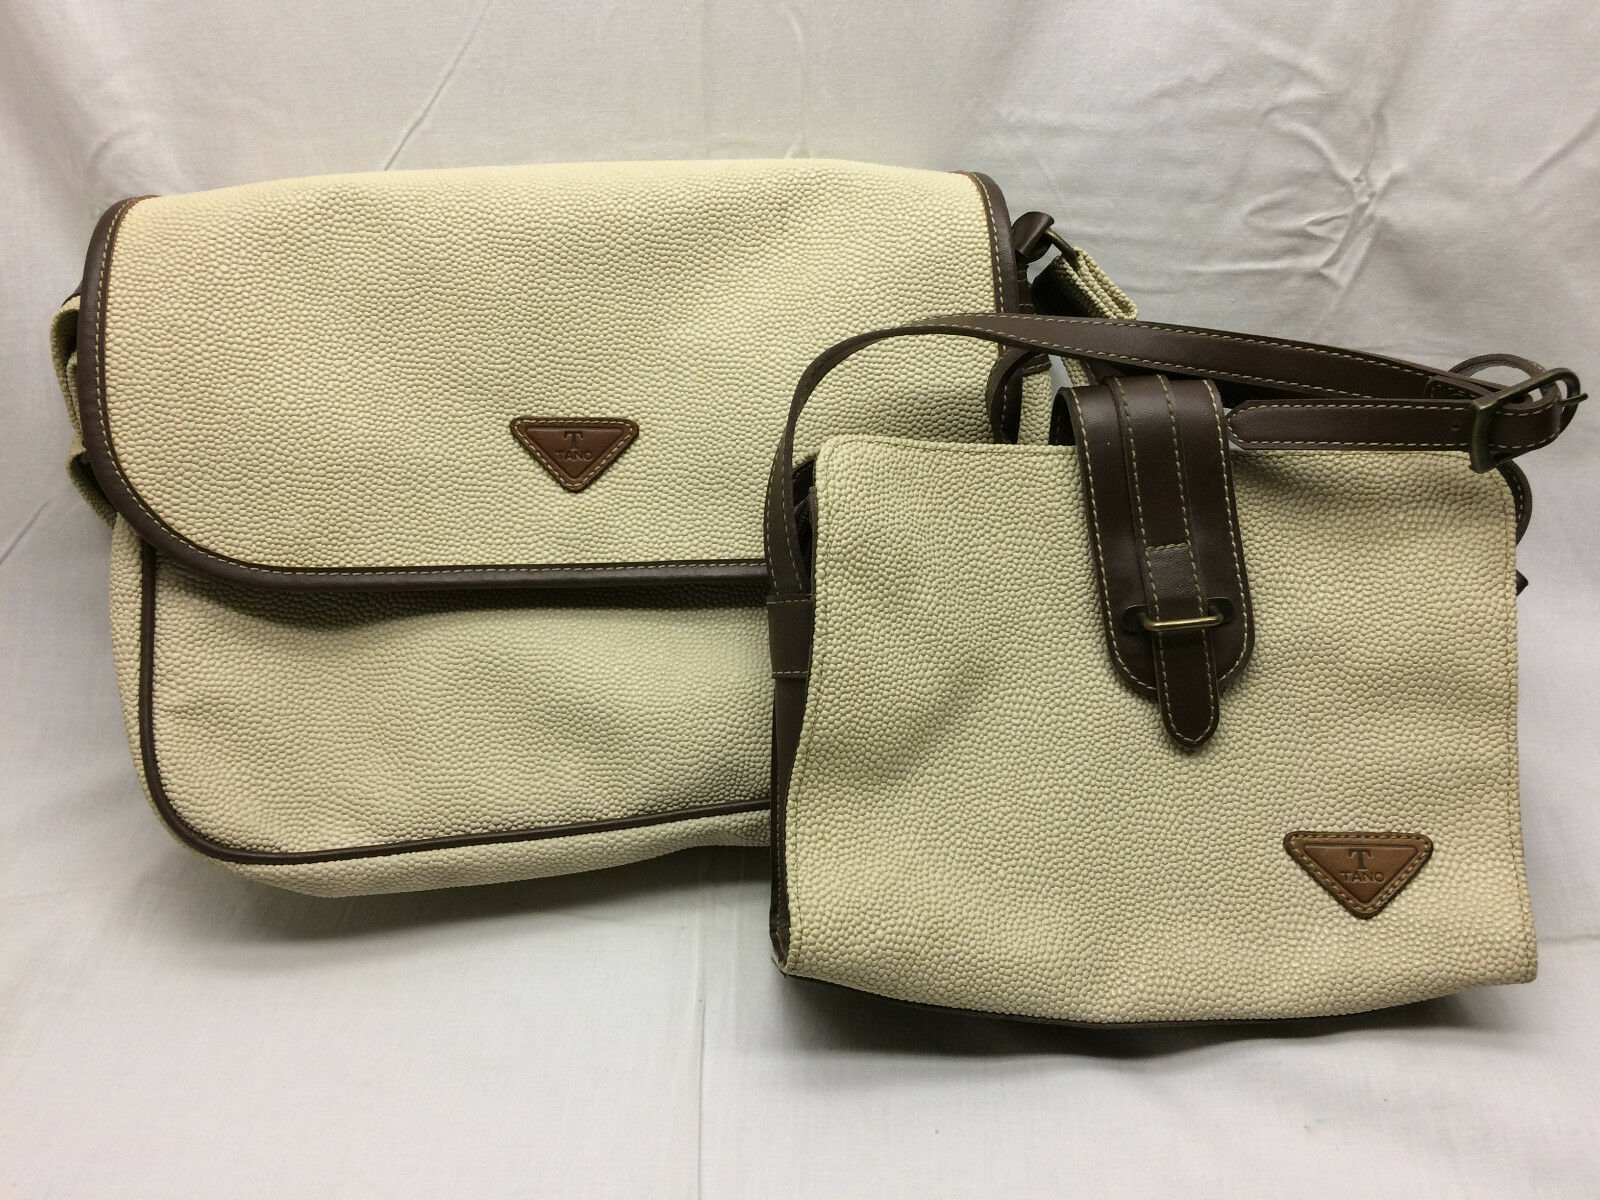 TANO International Messager BAG LARGE PURSE Over Night Matching Small Purse